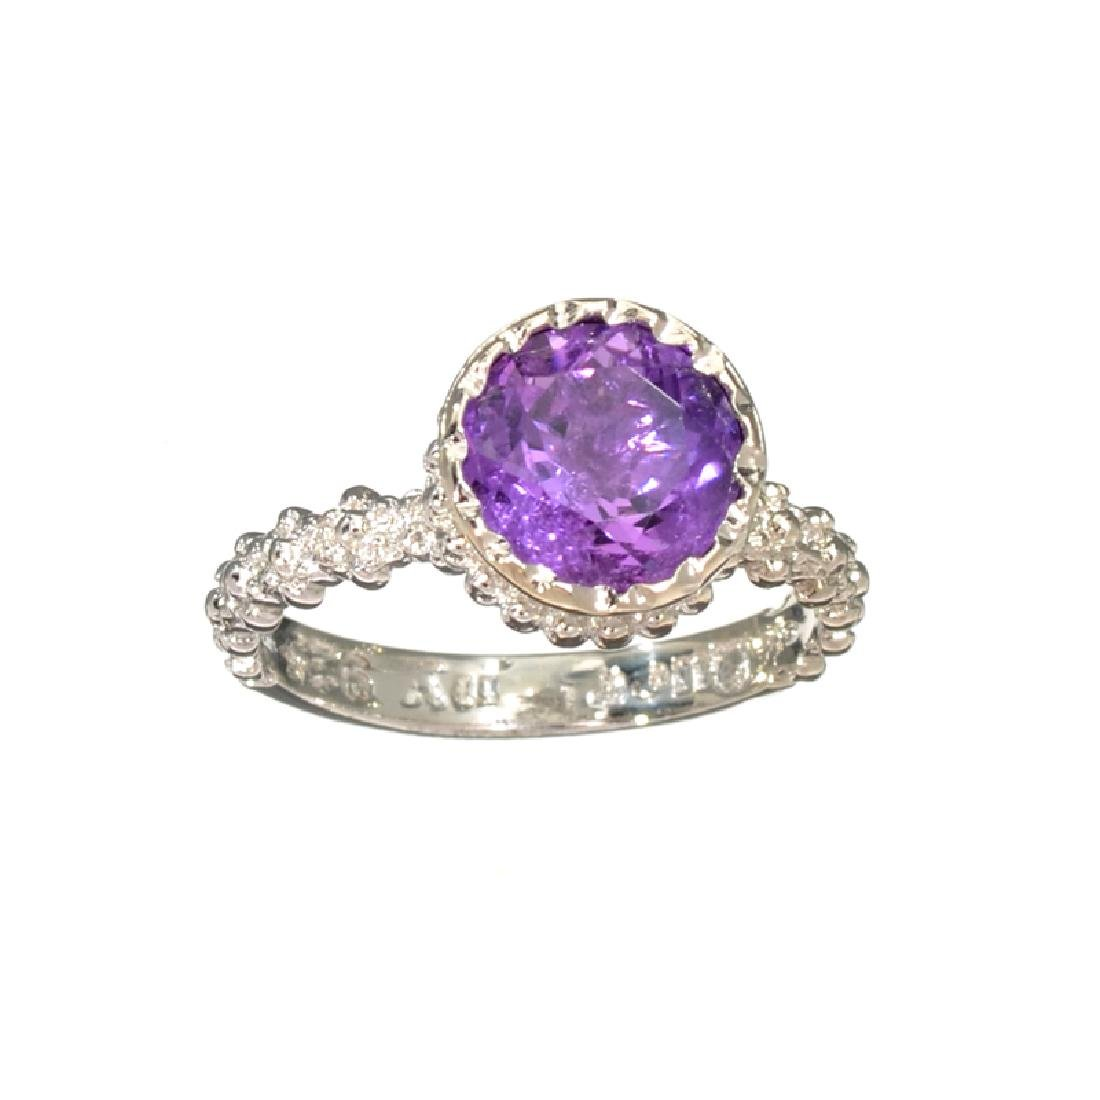 APP: 0.4k Fine Jewelry 3.02CT Round Cut Amethyst And